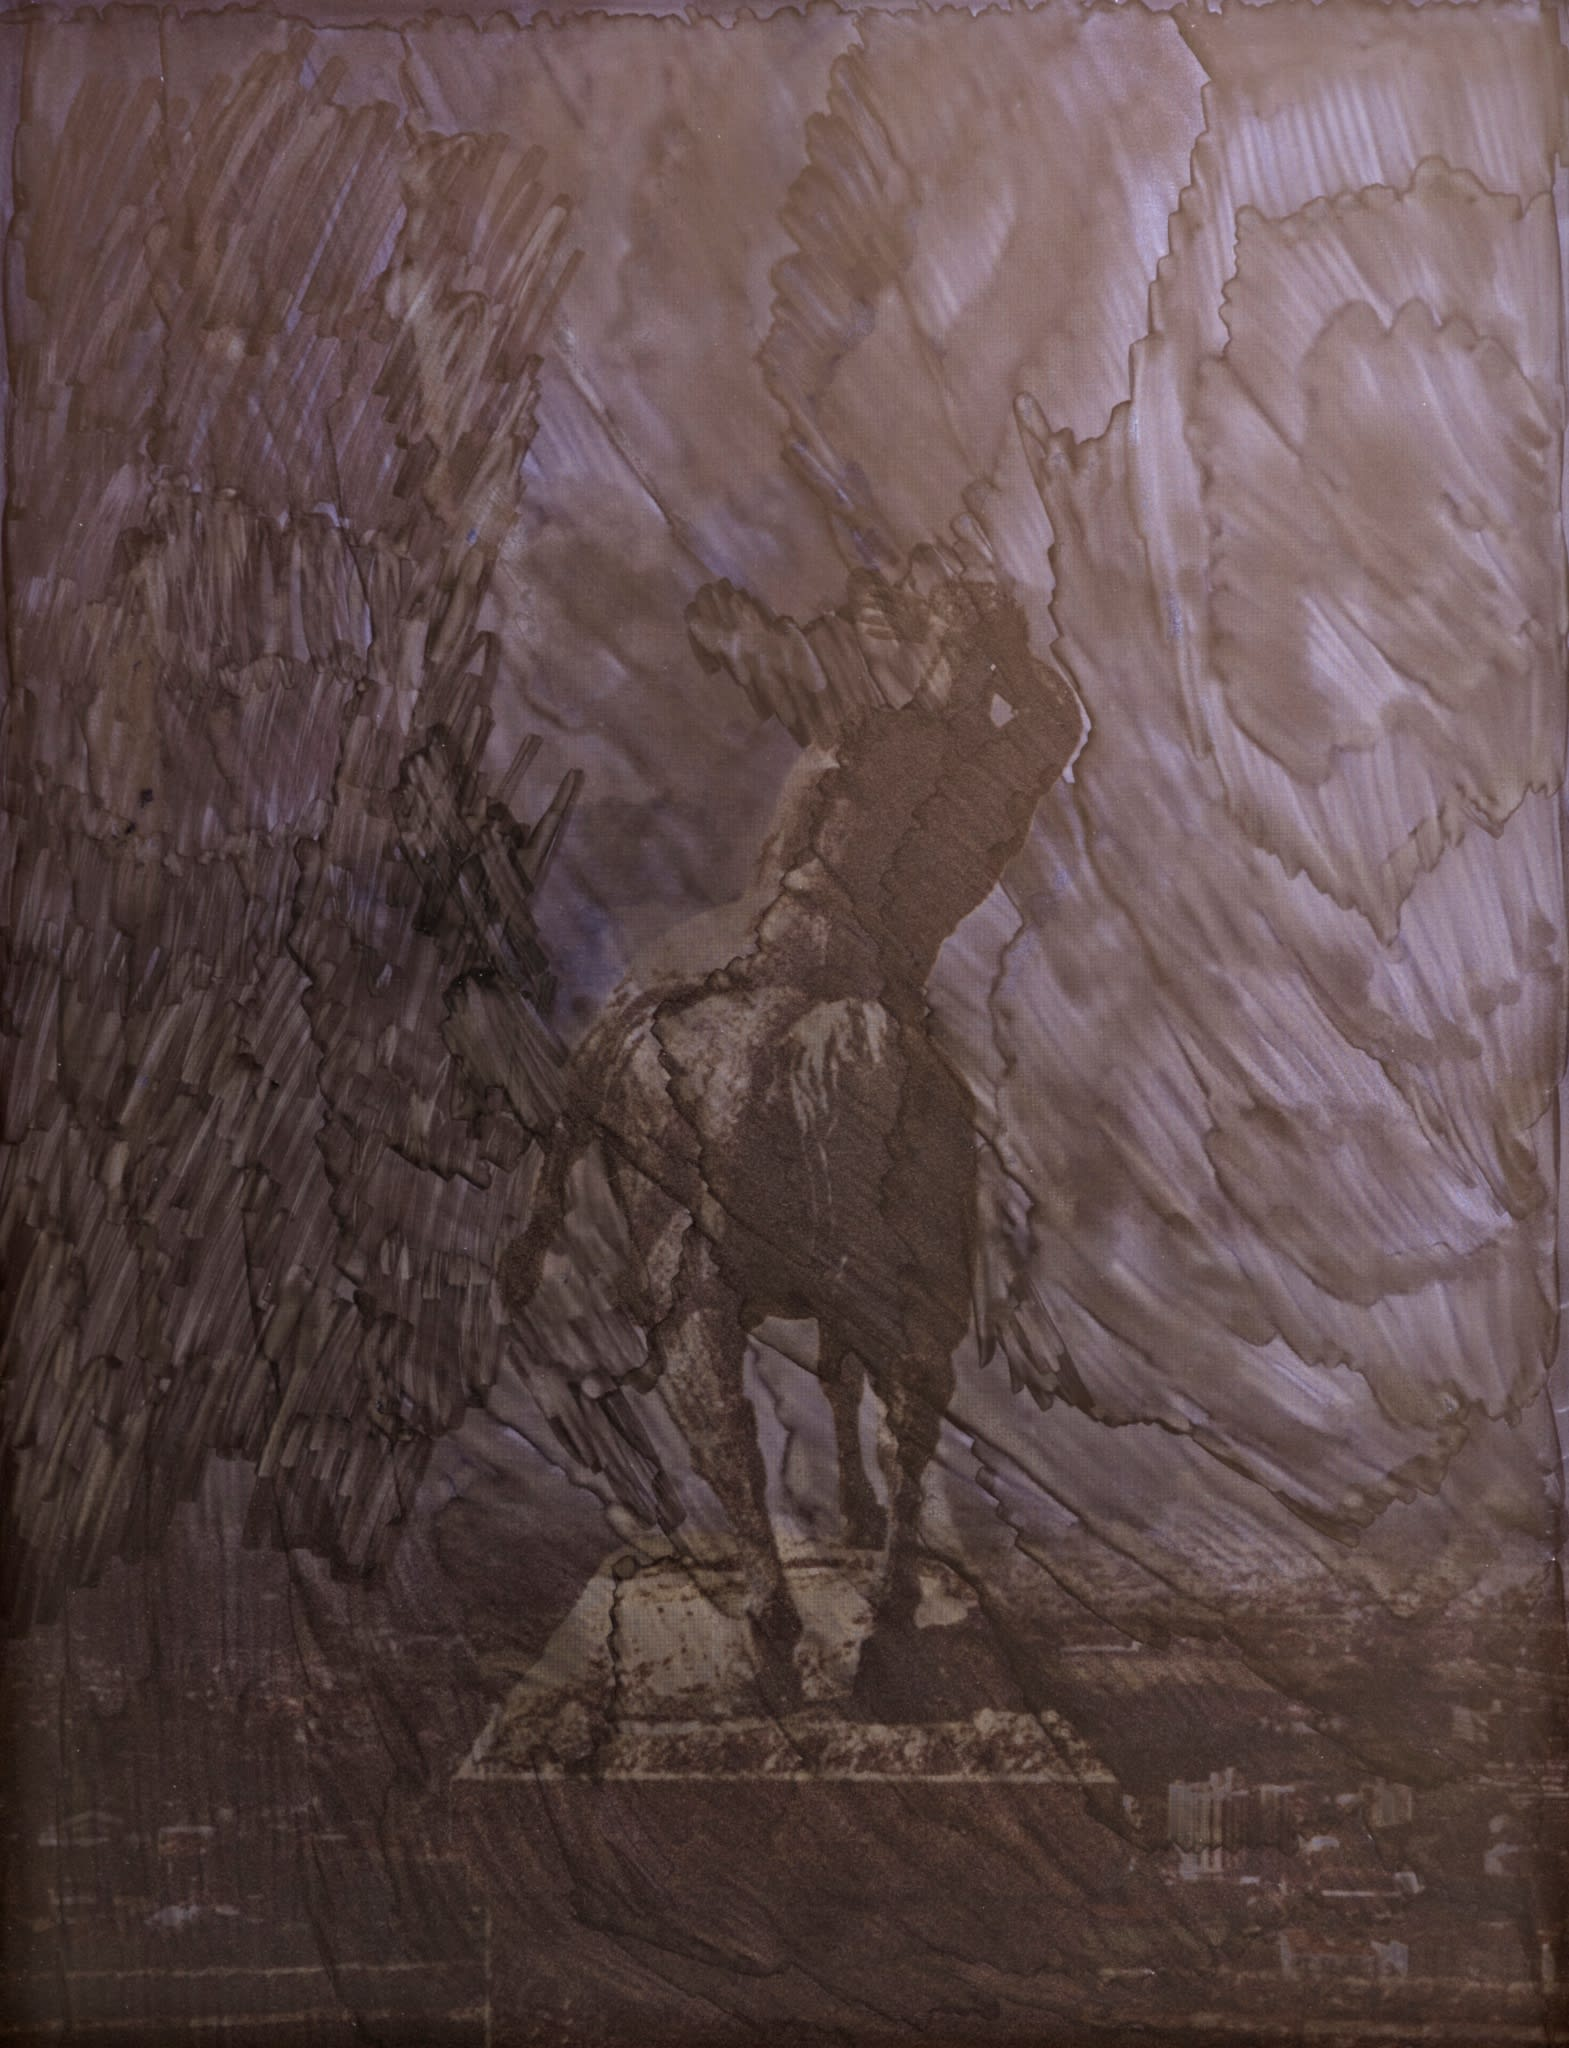 "<span class=""link fancybox-details-link""><a href=""/artists/30-cath-campbell/works/8473-cath-campbell-untitled-horse-2014/"">View Detail Page</a></span><div class=""artist""><strong>Cath Campbell</strong></div> <div class=""title""><em>Untitled (Horse)</em>, 2014</div> <div class=""medium"">Ink on UV print on aluminium</div> <div class=""dimensions"">44 x 34 cm<br />17 3/8 x 13 3/8 in</div><div class=""copyright_line"">Copyright The Artist</div>"